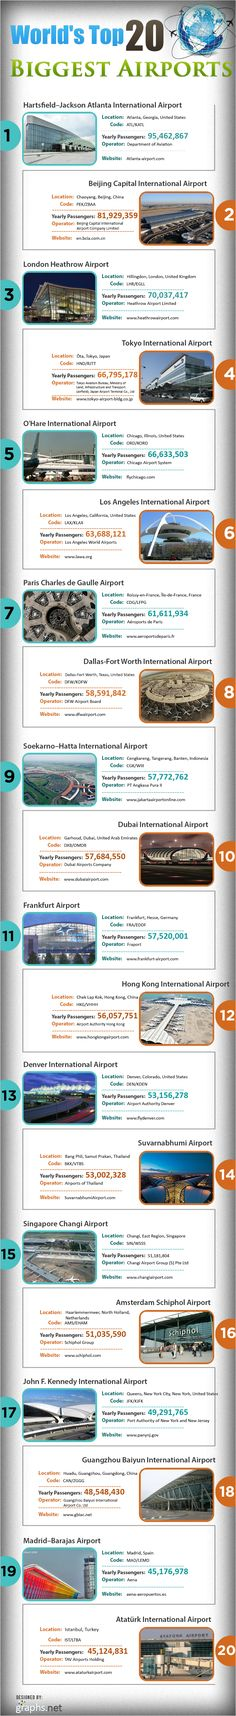 World's Top 20 Biggest Airports Infographic  #airport #biggestairports #top